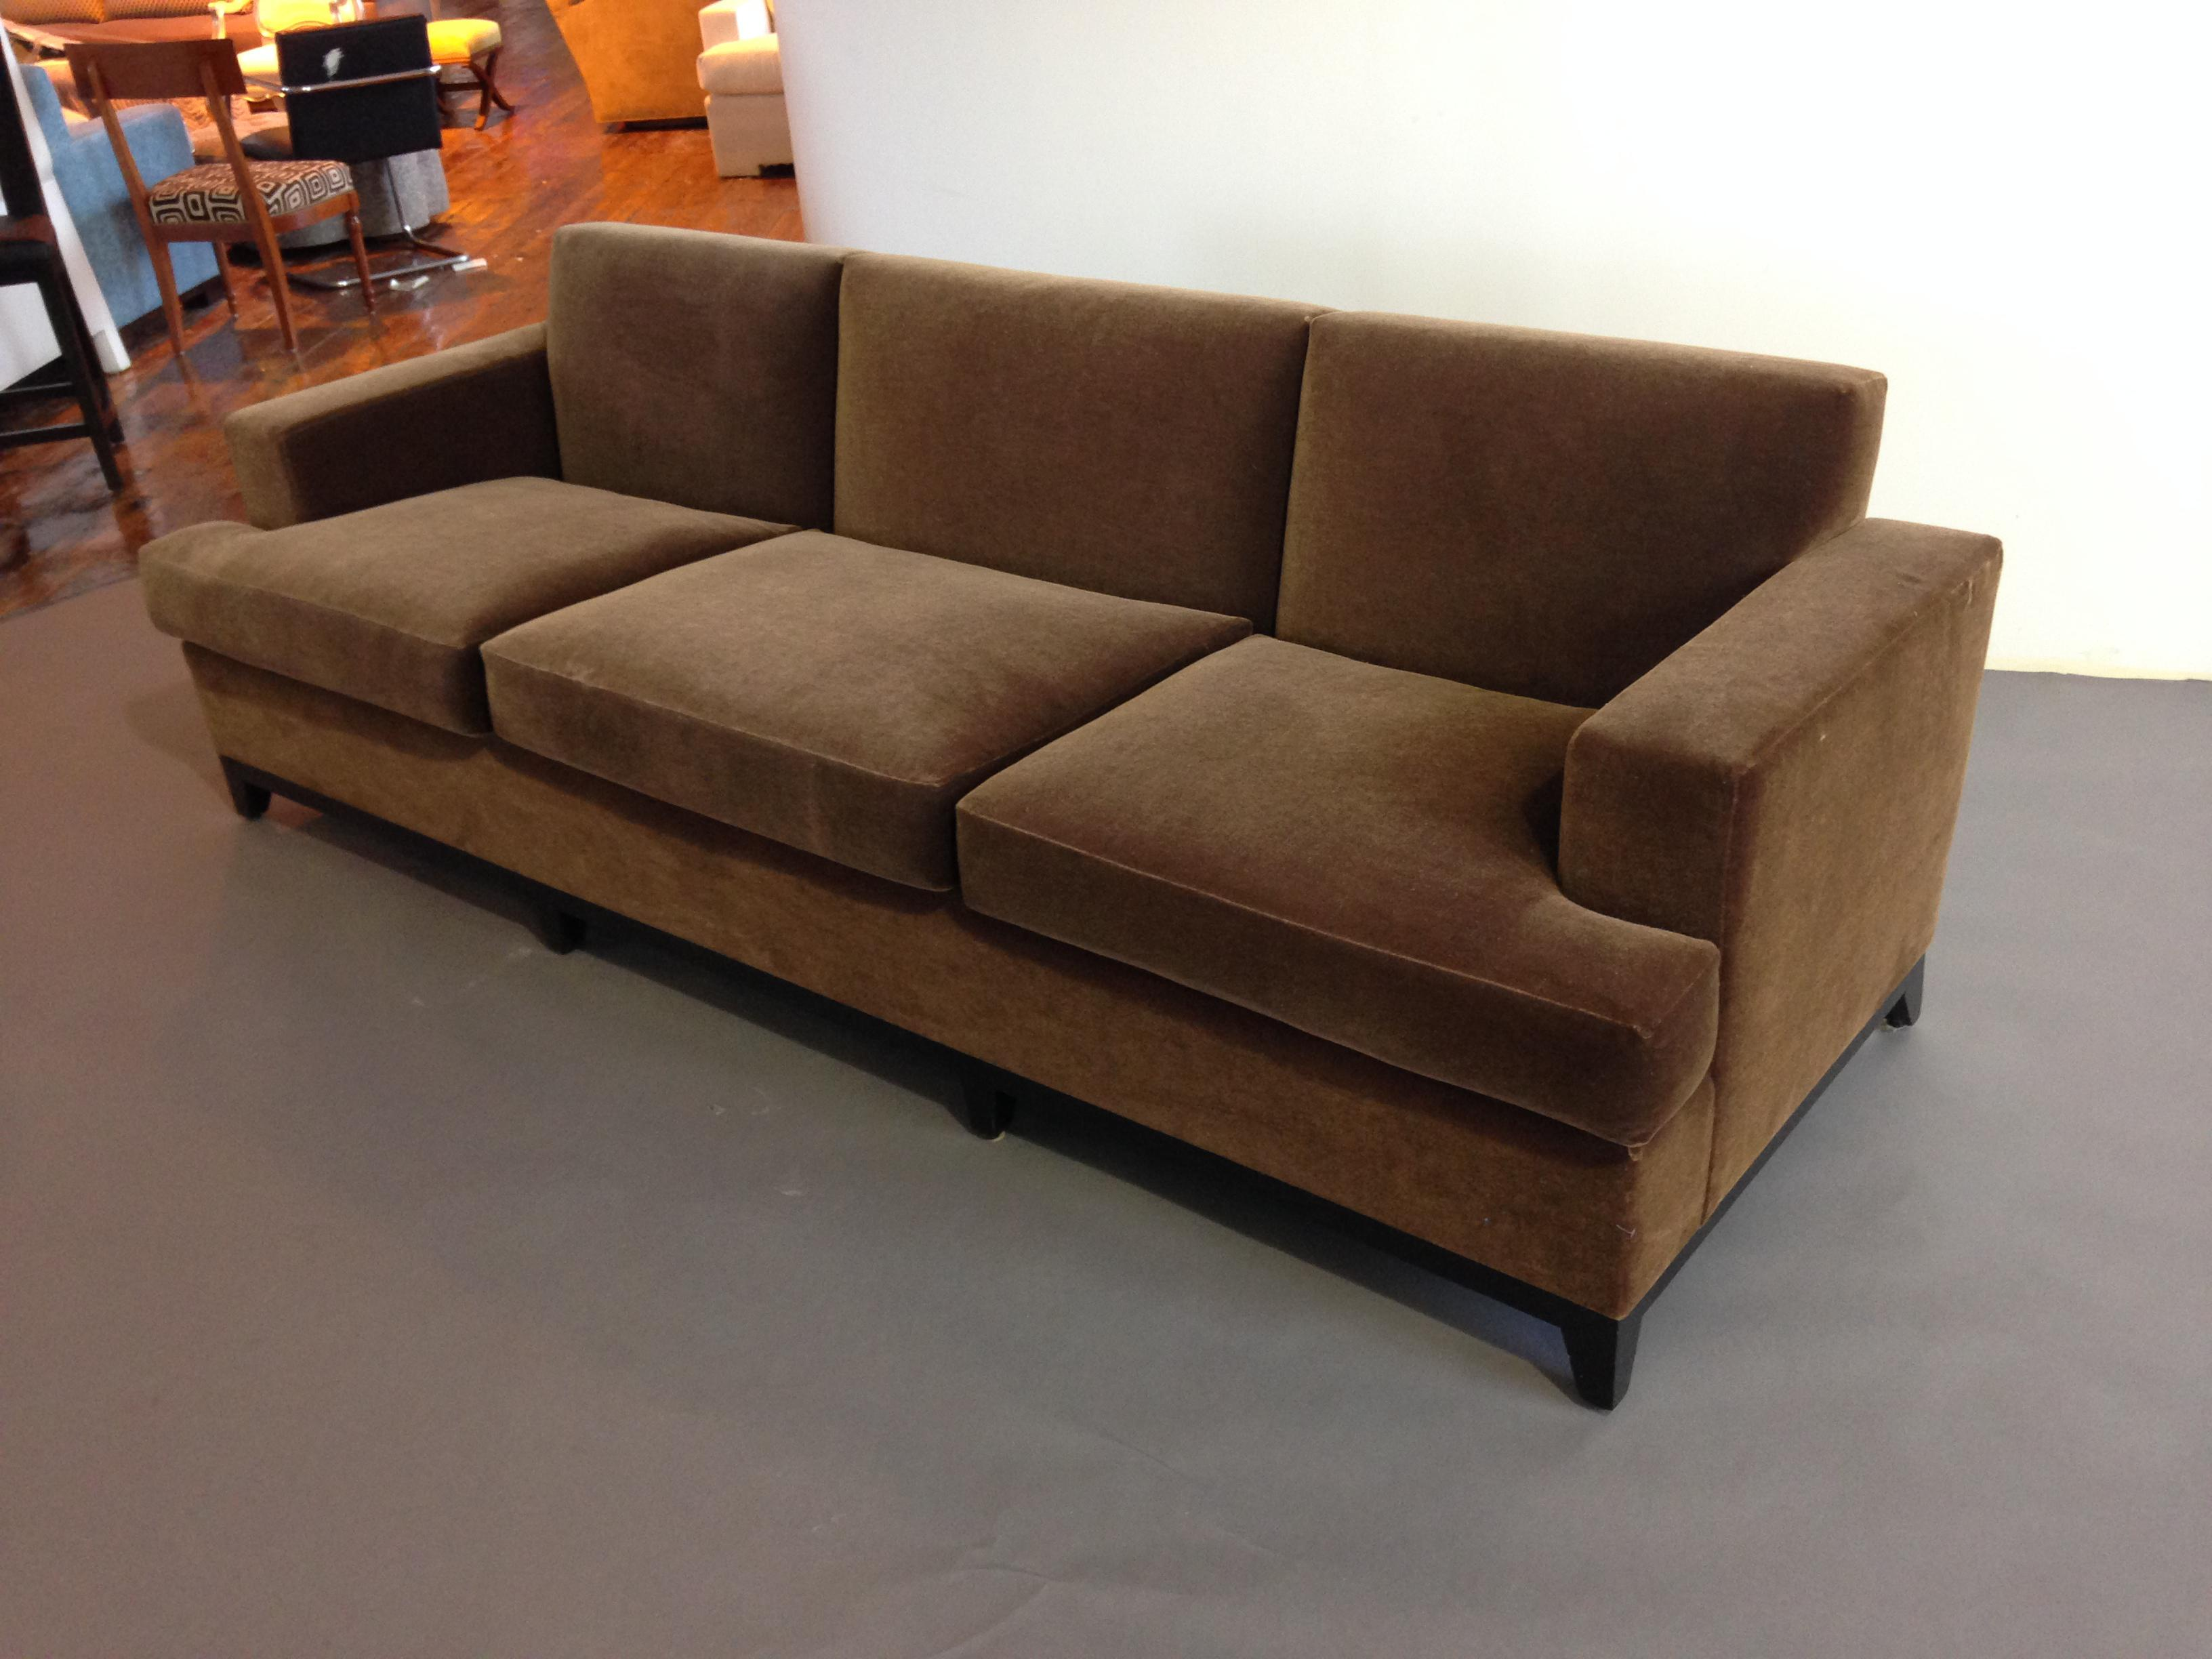 Captivating Brown Mohair 3 Seater Sofa   Image 2 Of 3